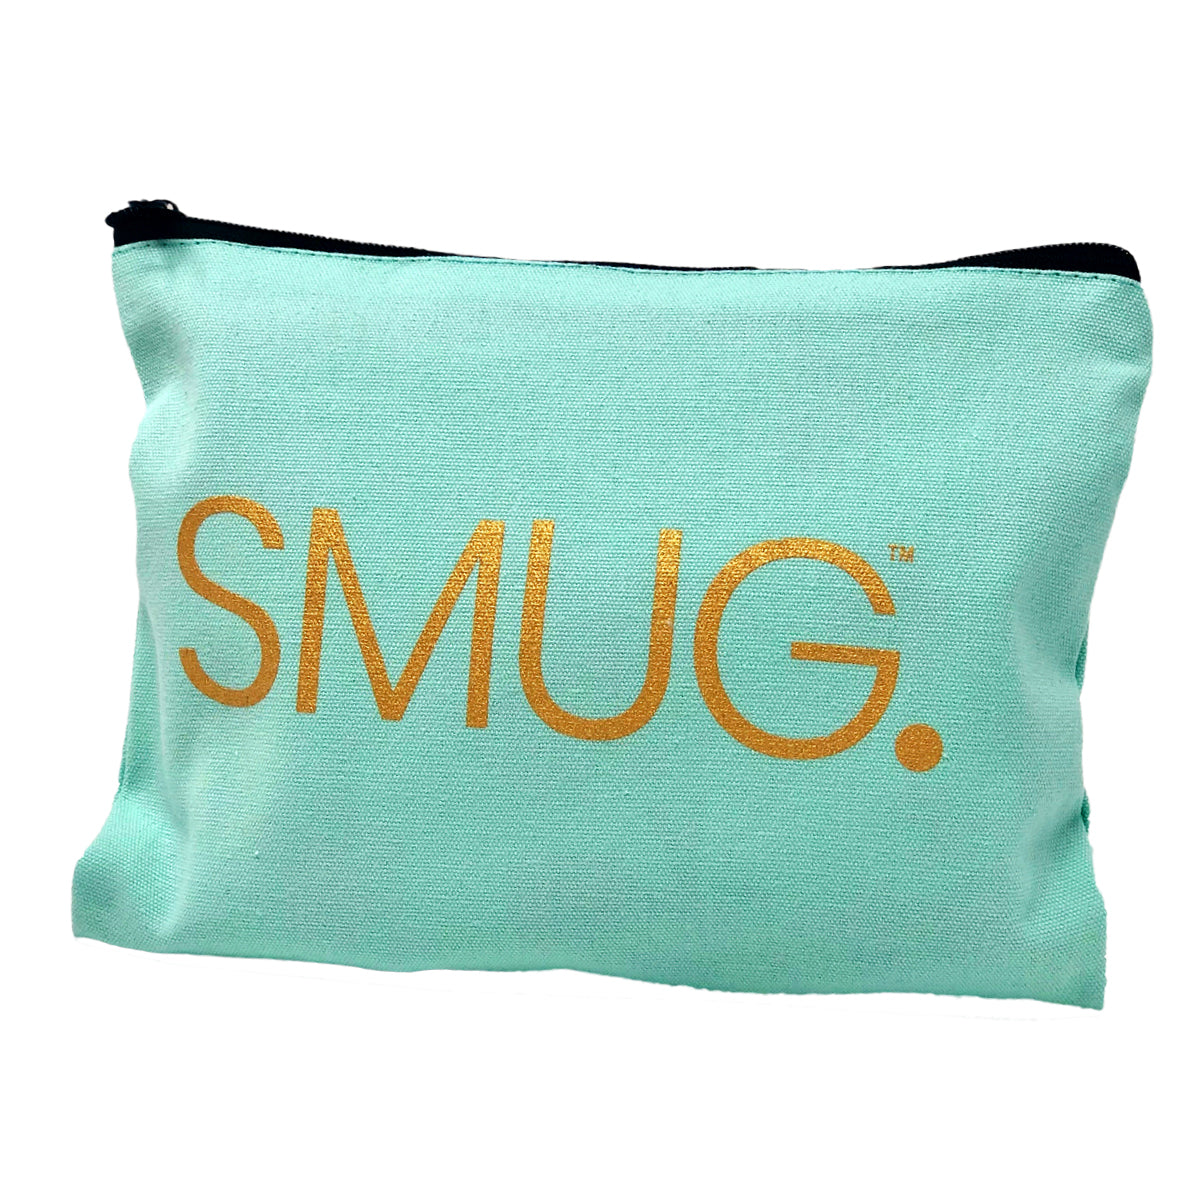 SMUG Travel Pouch - Mint